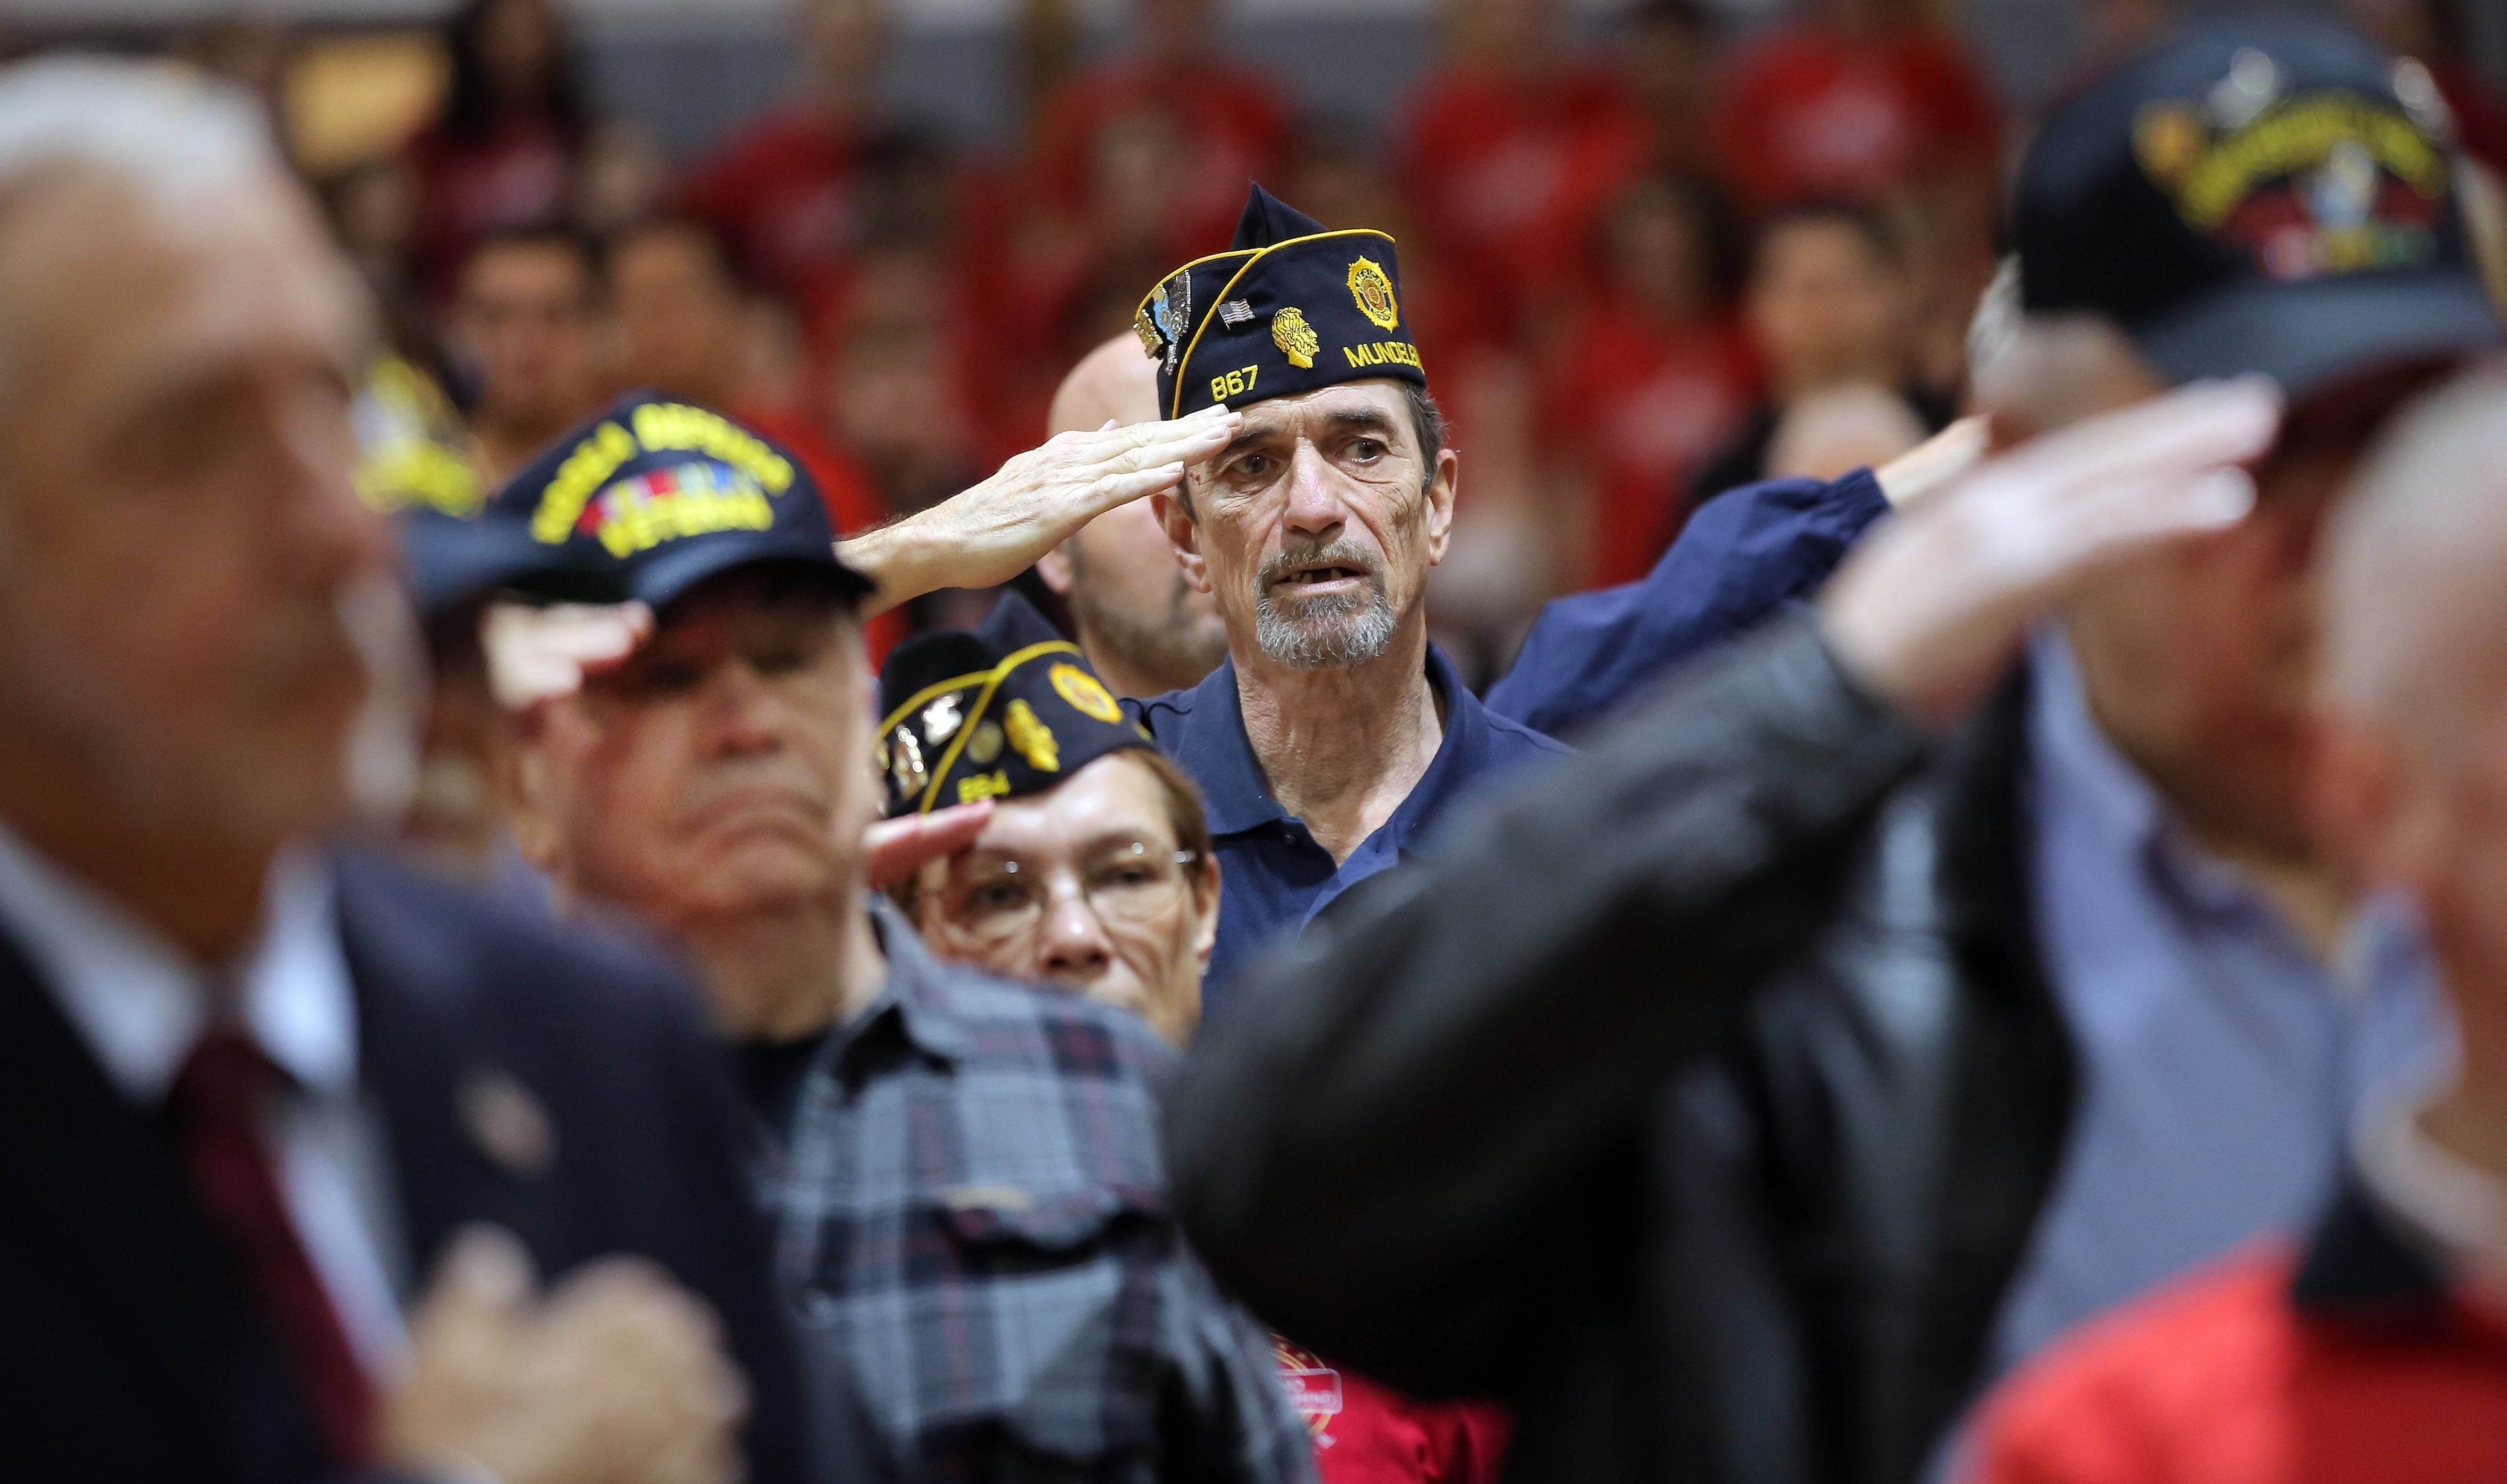 Veterans salute as the national anthem is played during a Veterans Day assembly at Mundelein High School Friday.